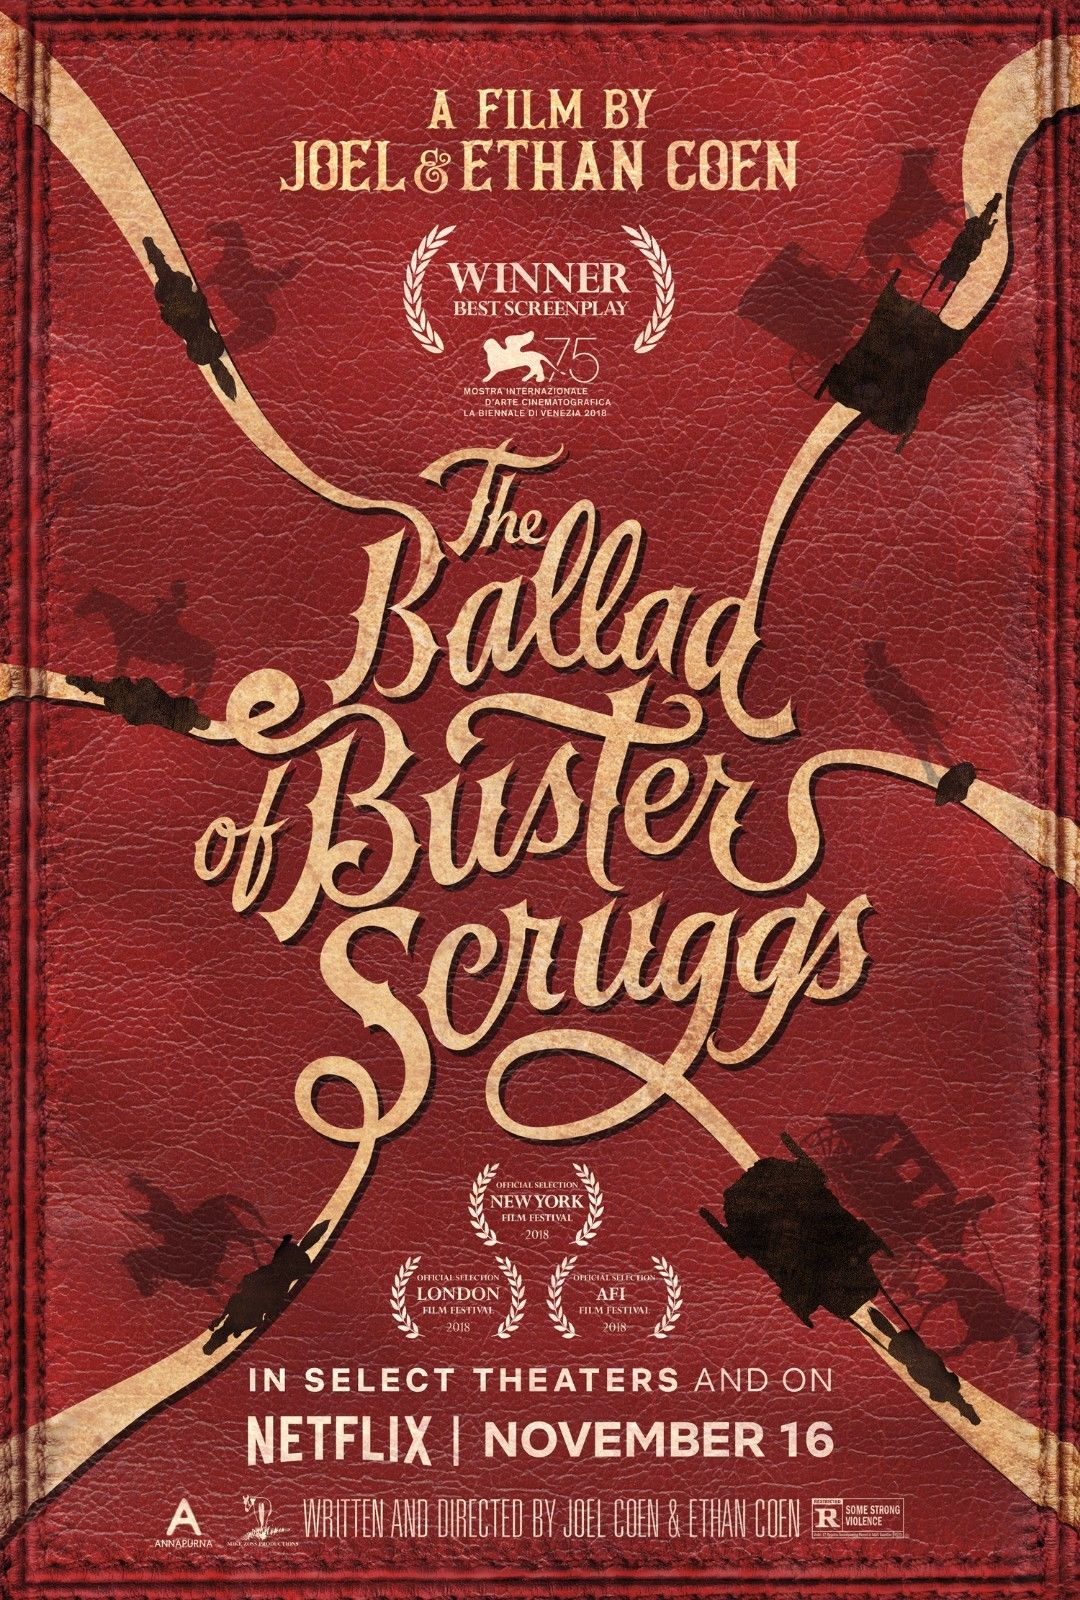 The Western That Got Rattled - The Ballad of Buster Scruggs and Coen Brothers films